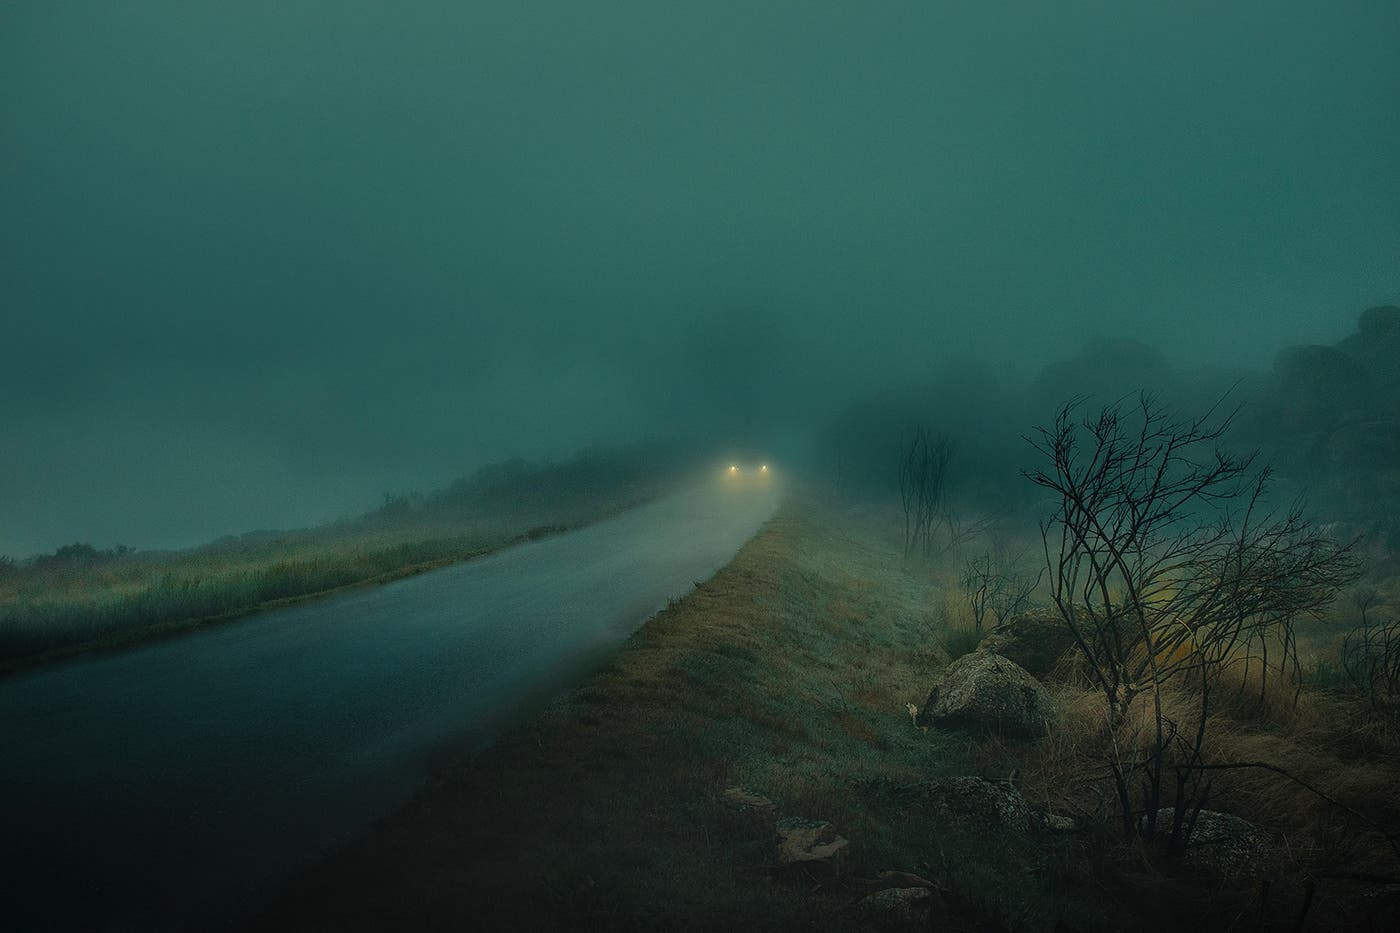 Henri Prestes Takes Us Along Moody Cinematic Night Drives